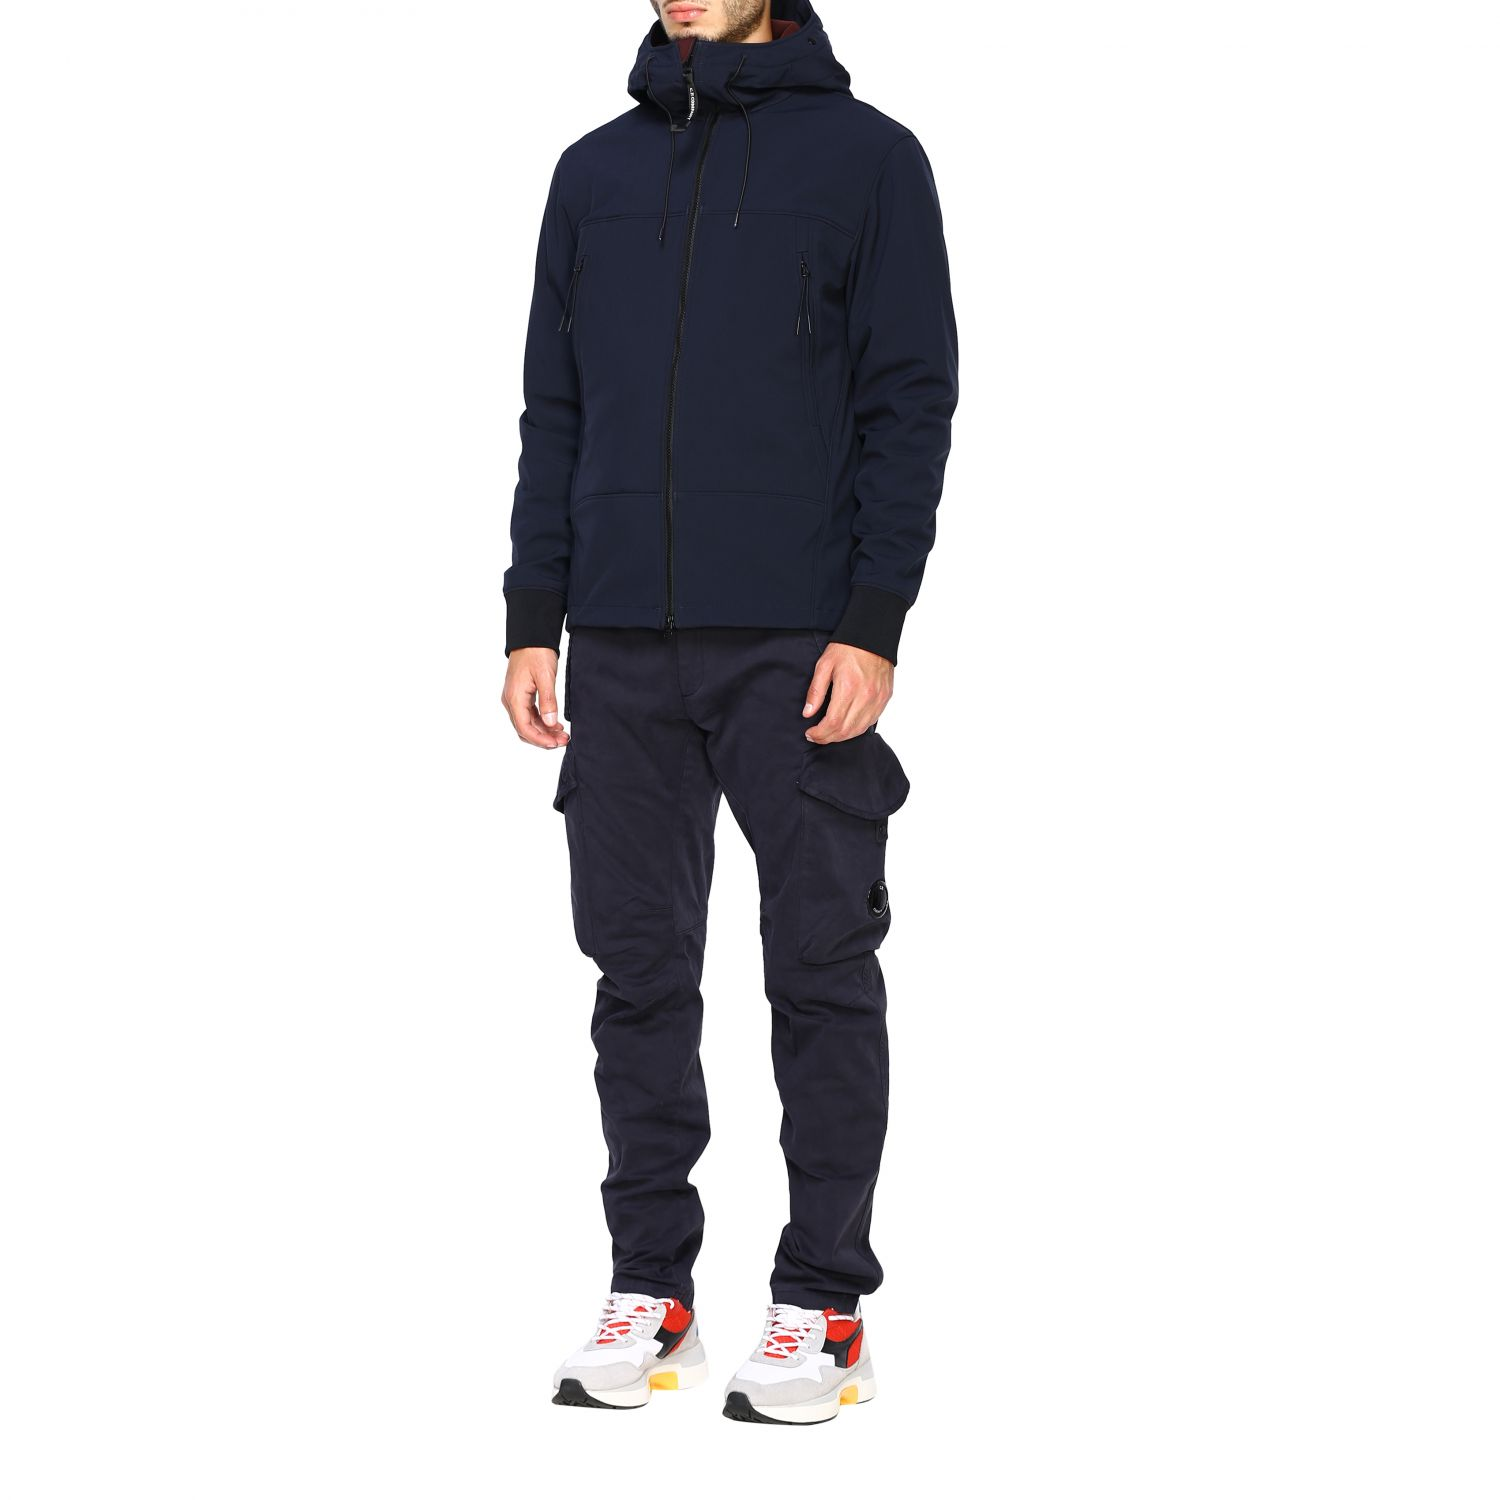 Jacket men C.p. Company blue 4